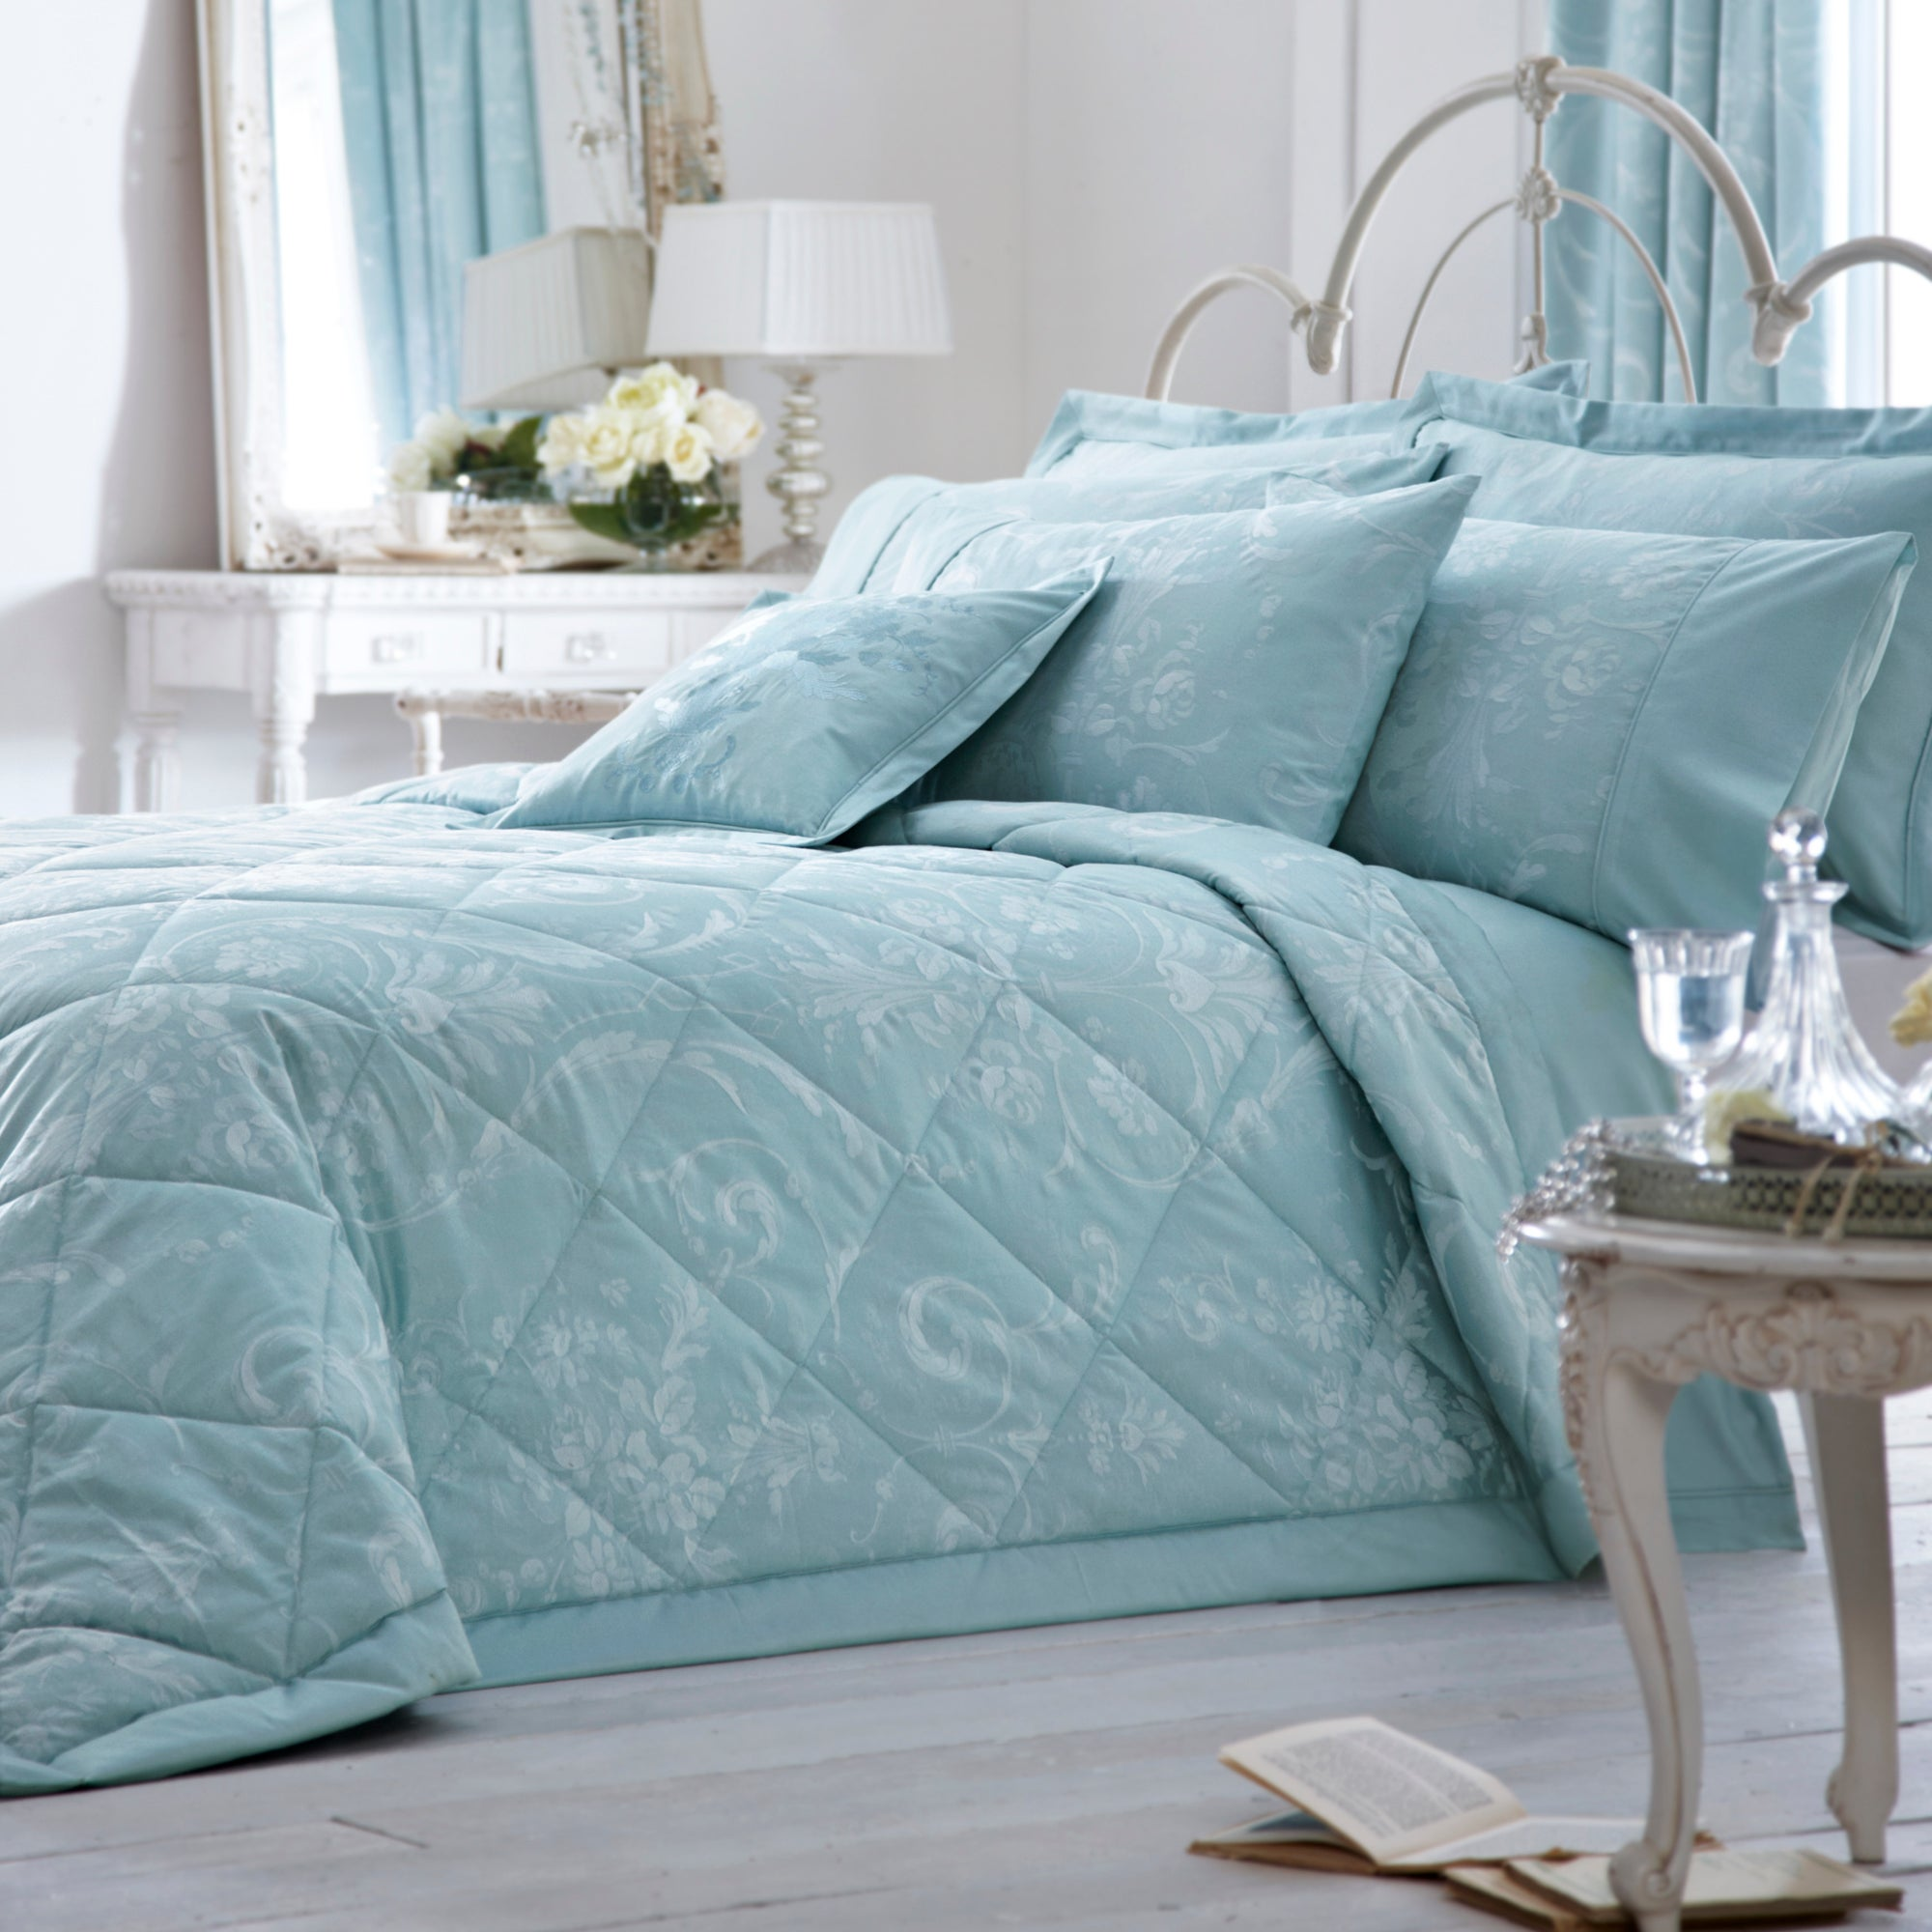 buy cheap dorma bed linen compare home textiles prices. Black Bedroom Furniture Sets. Home Design Ideas